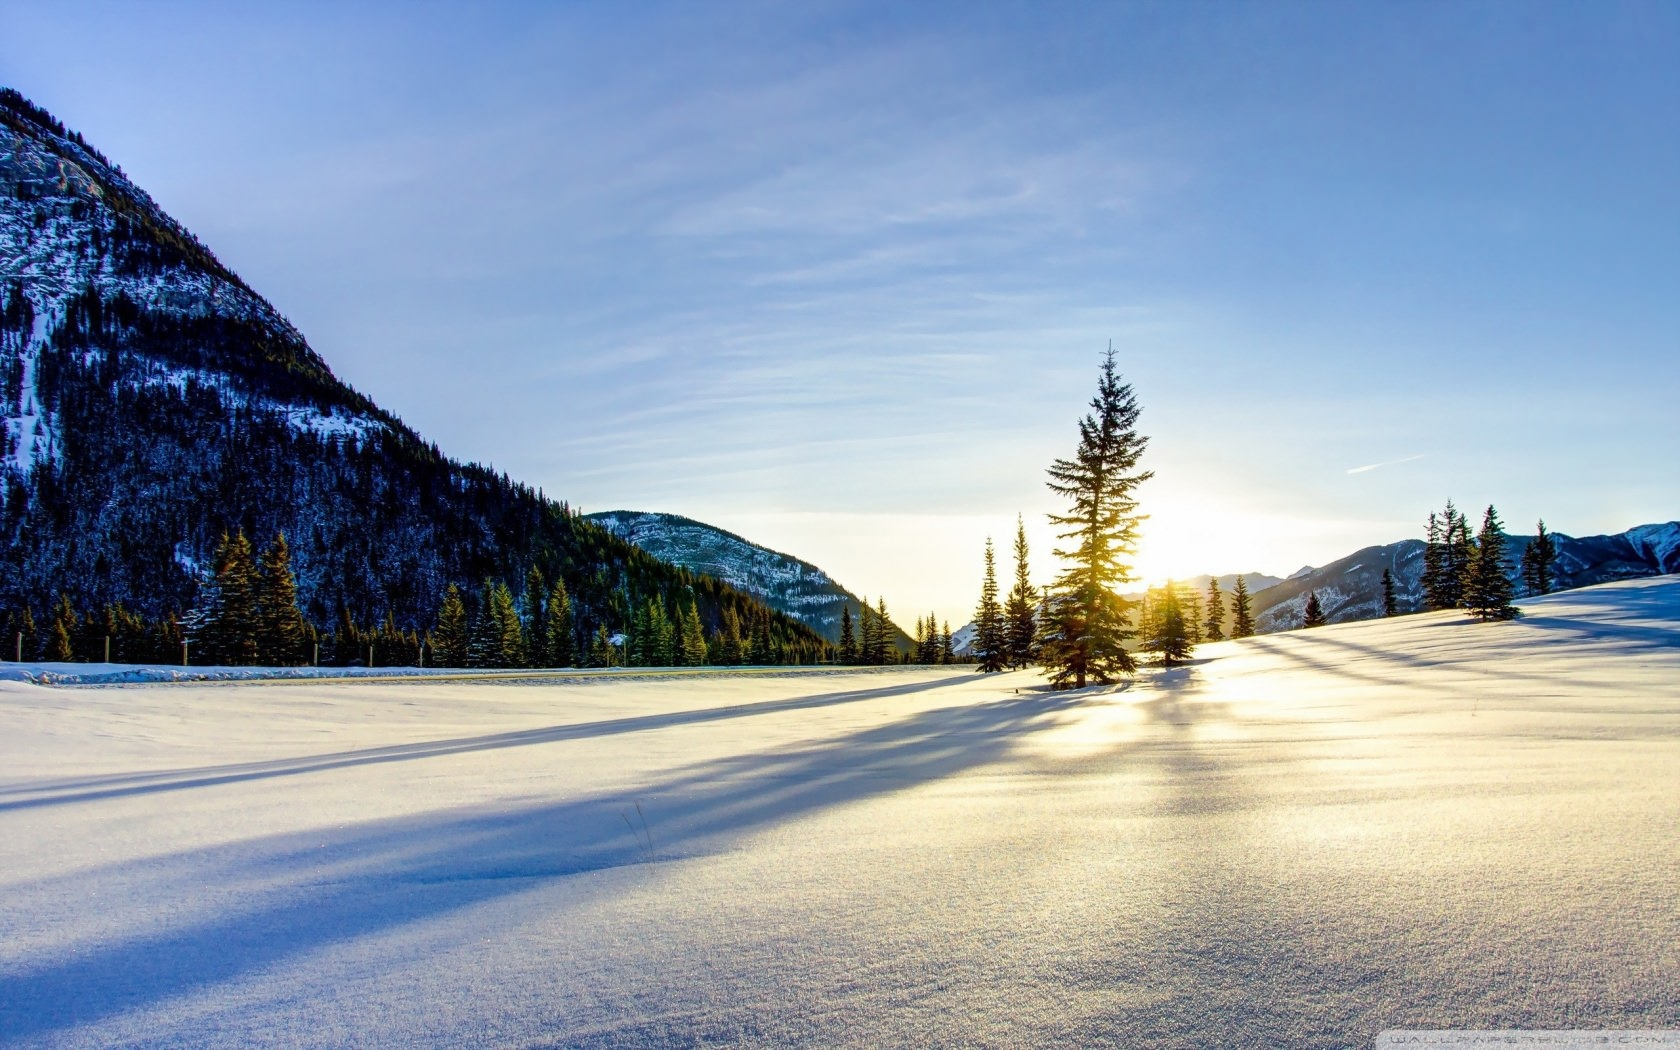 20 hq snow backgrounds wallpapers images freecreatives - Snowy wallpaper ...